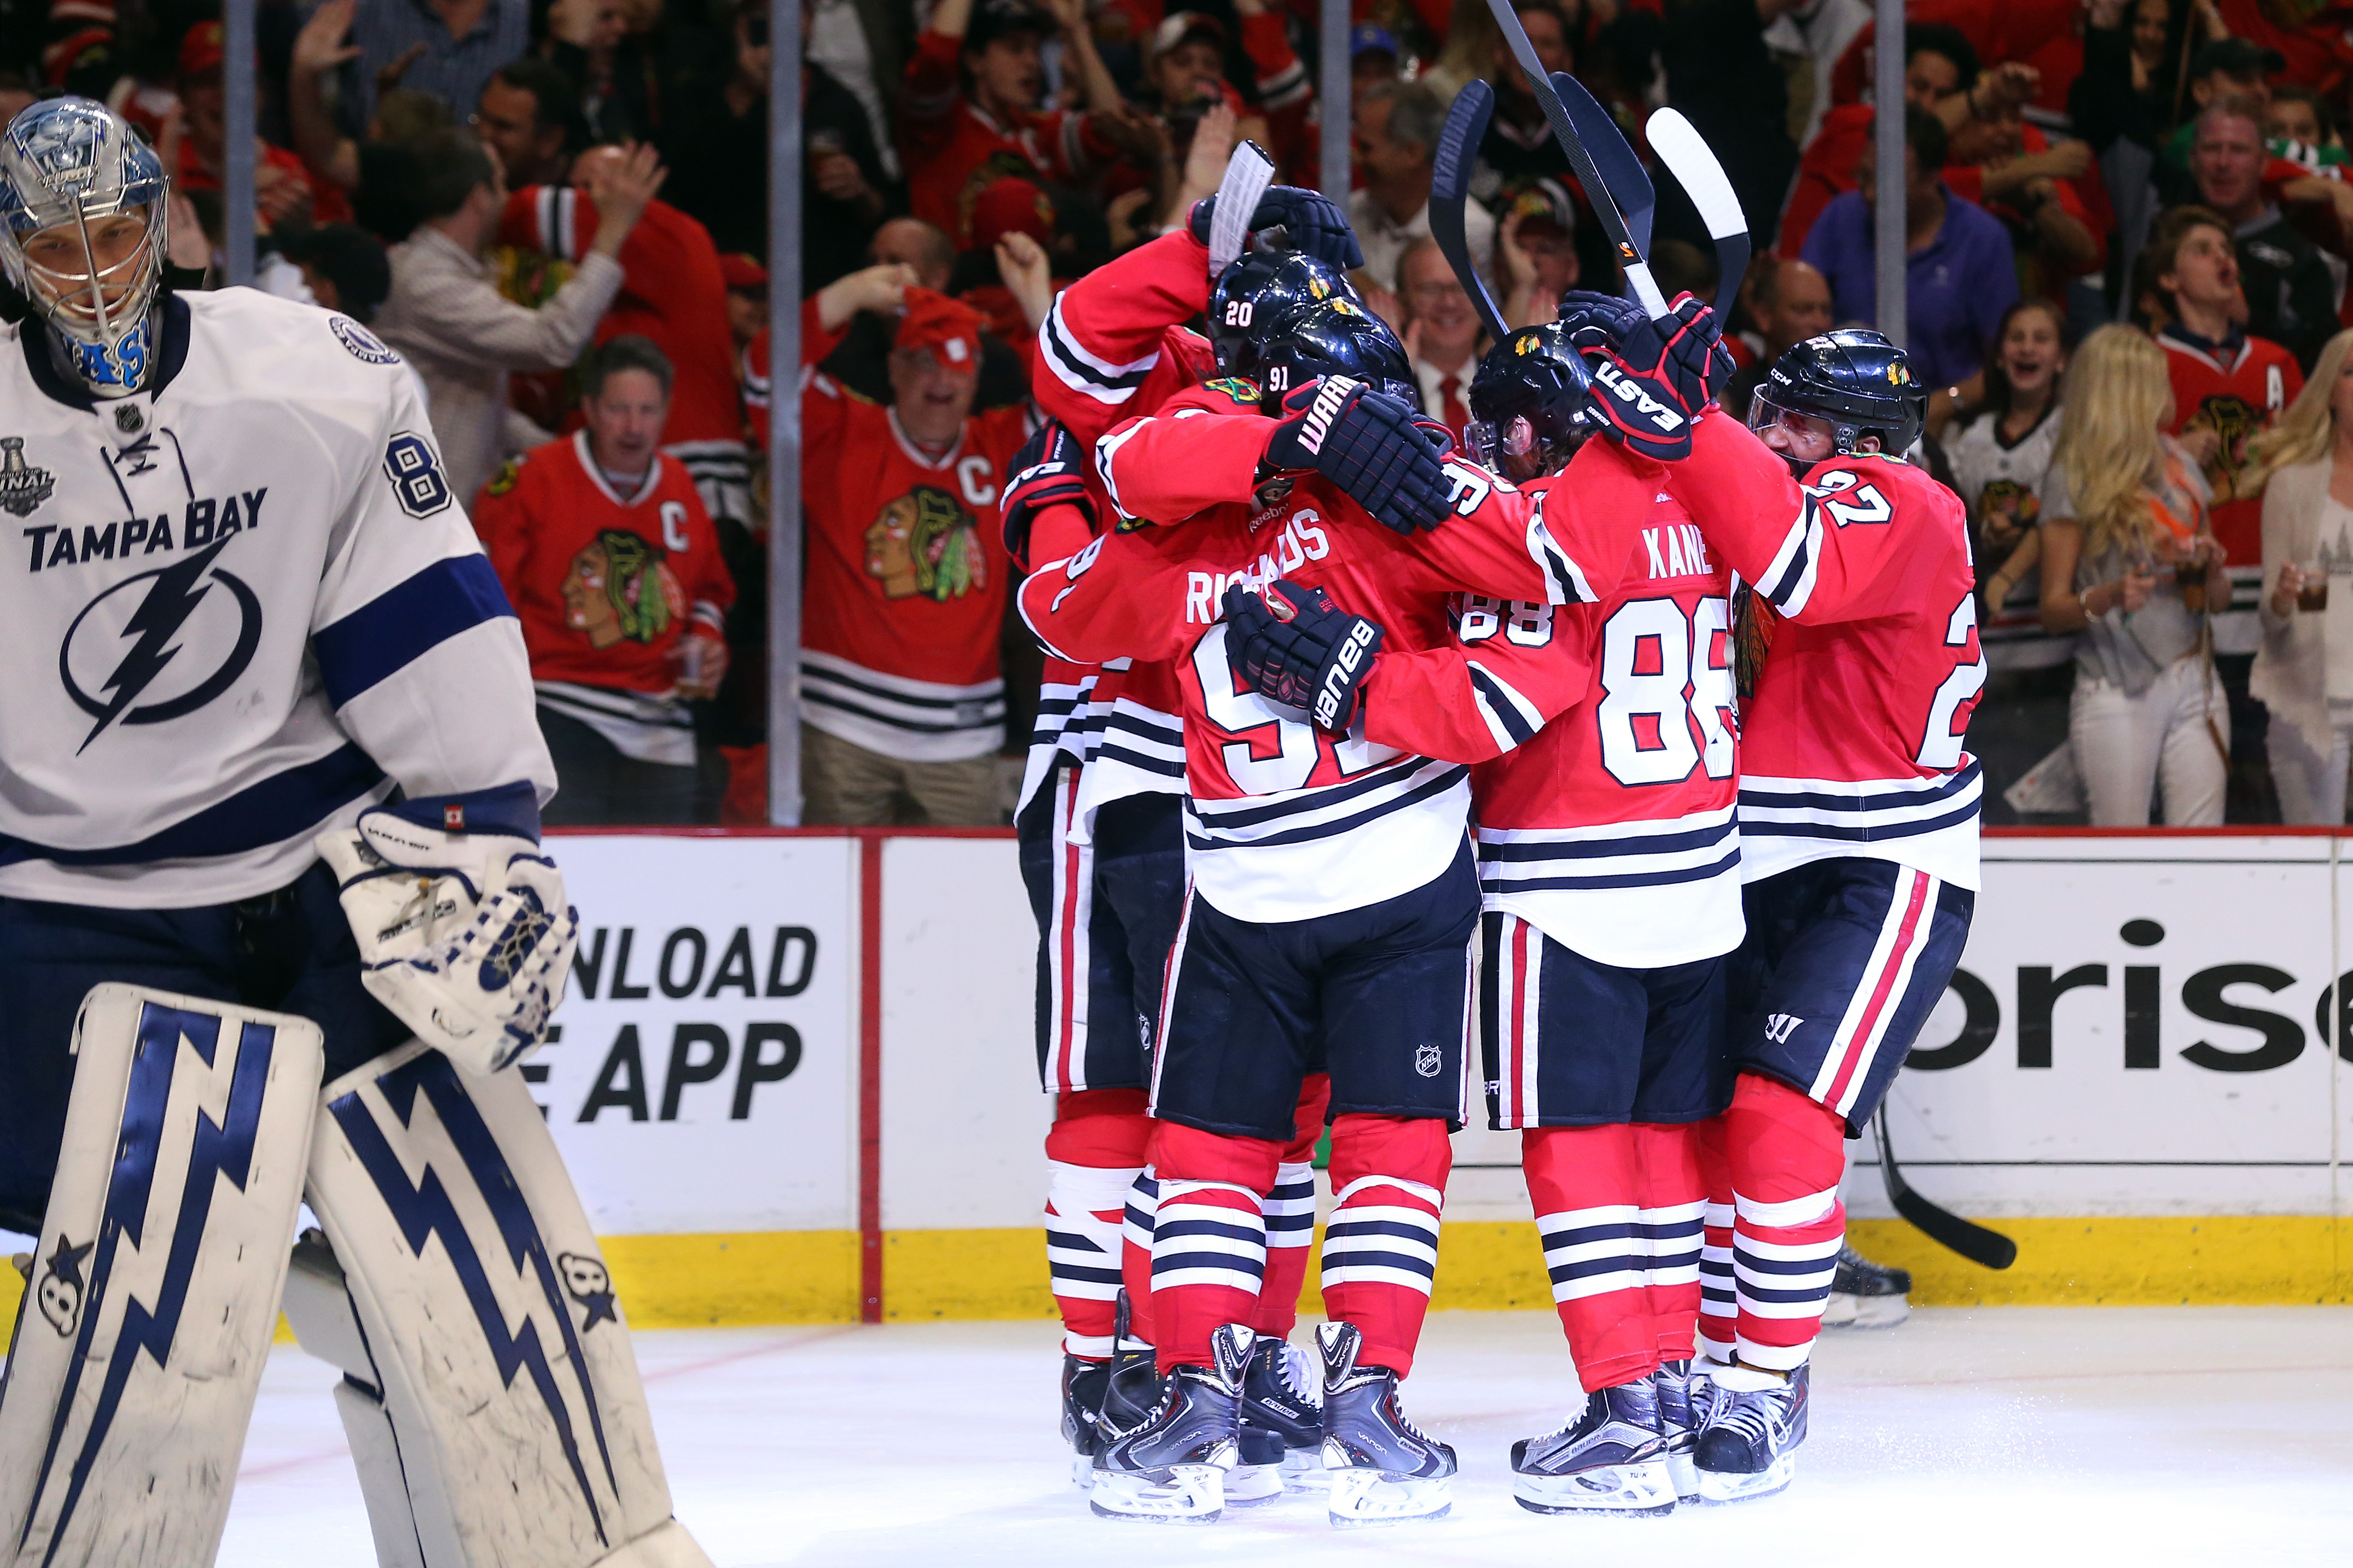 The Blackhawks celebrate after Brandon Saad scored what proved to be the game-winning goal during the third period of Game Four.